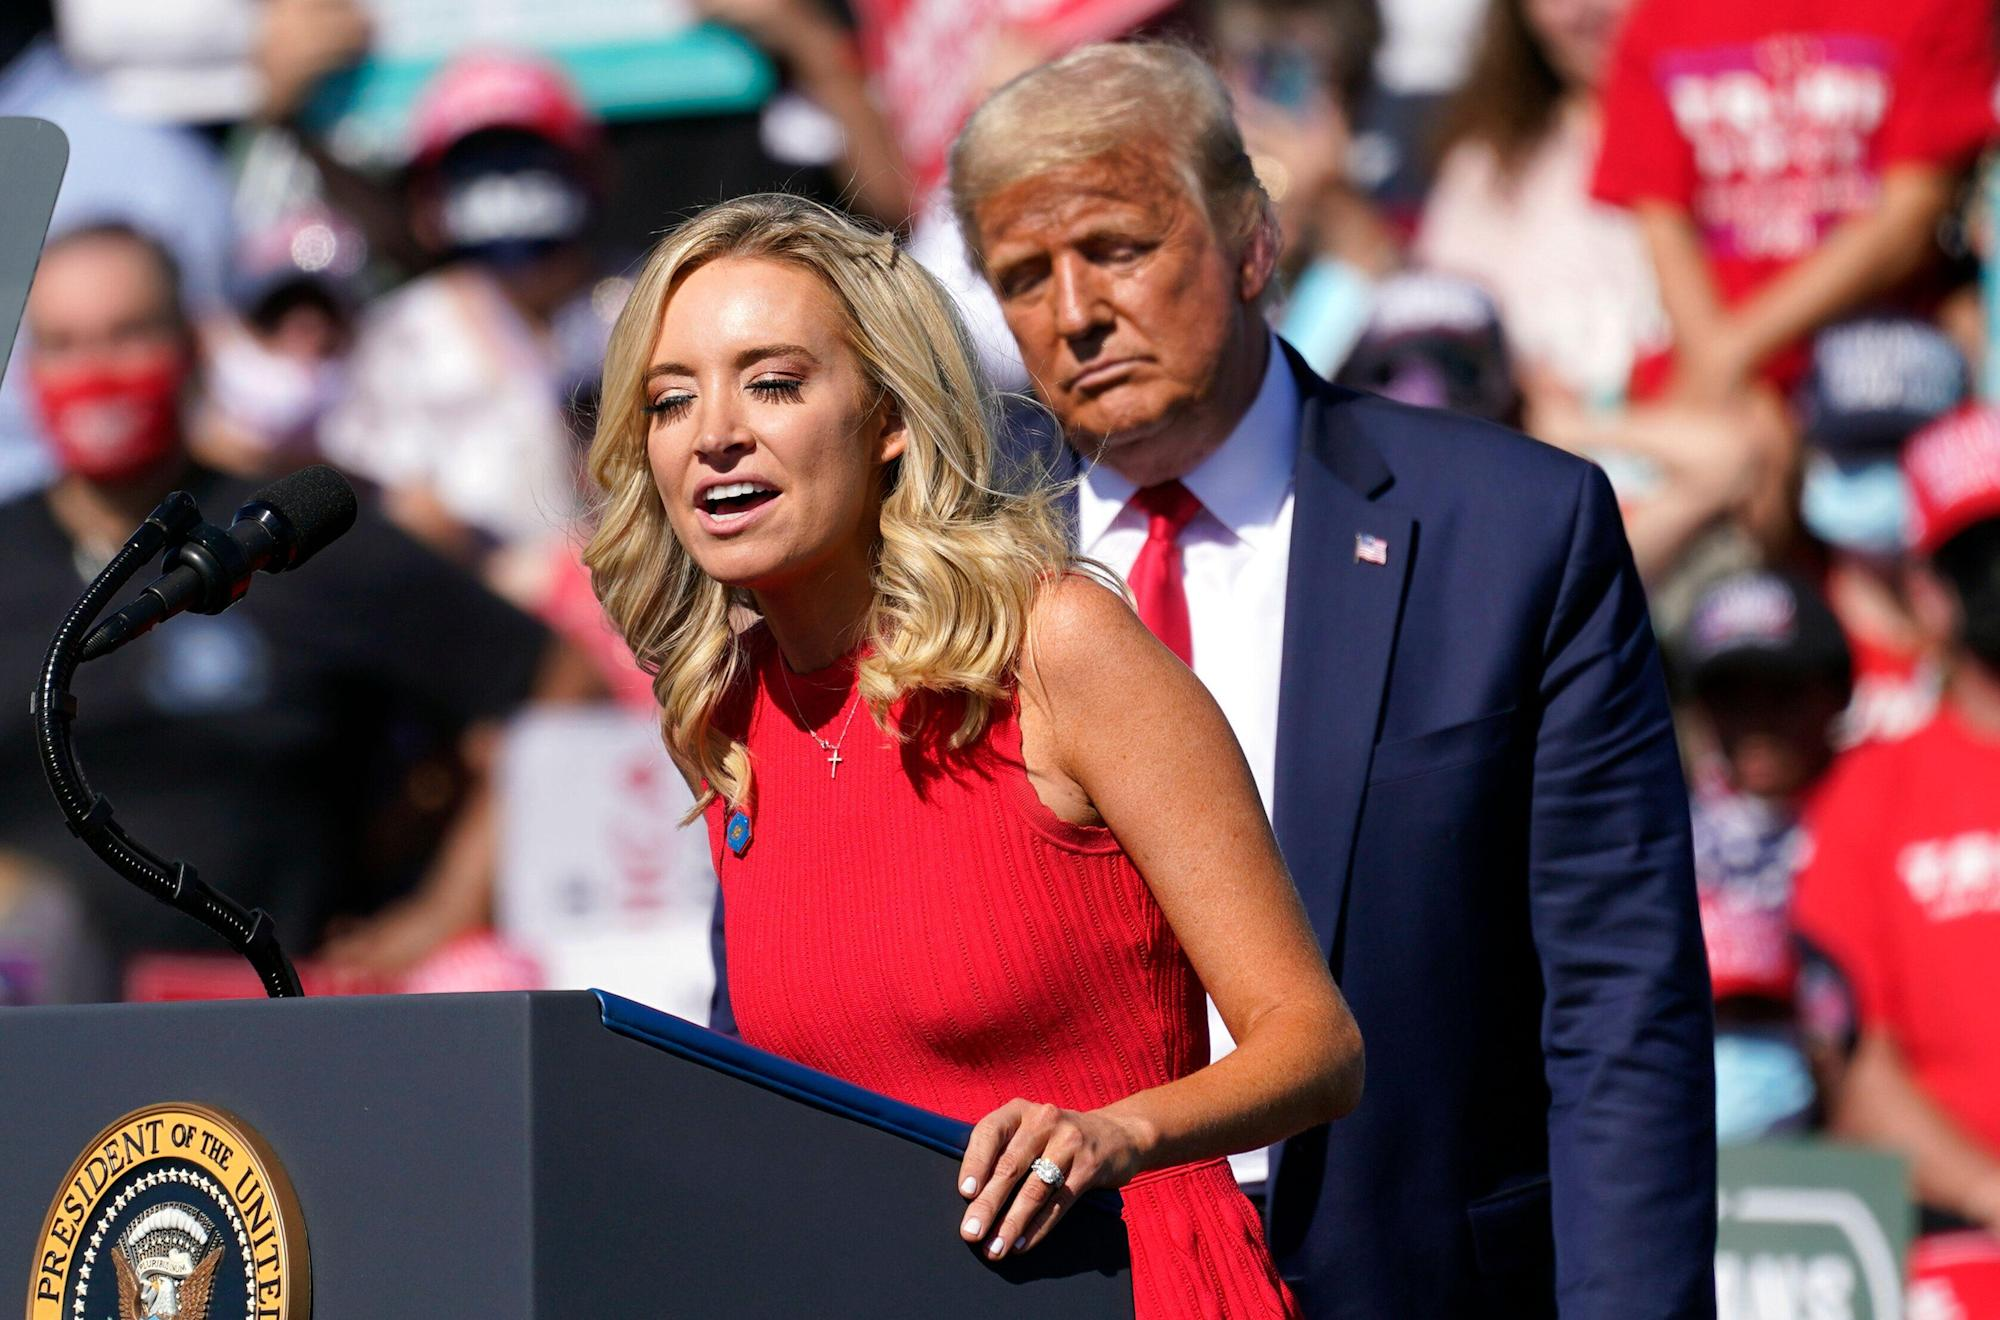 Kayleigh McEnany Breaks White House Whopper Record With MAGA Crowd Tally